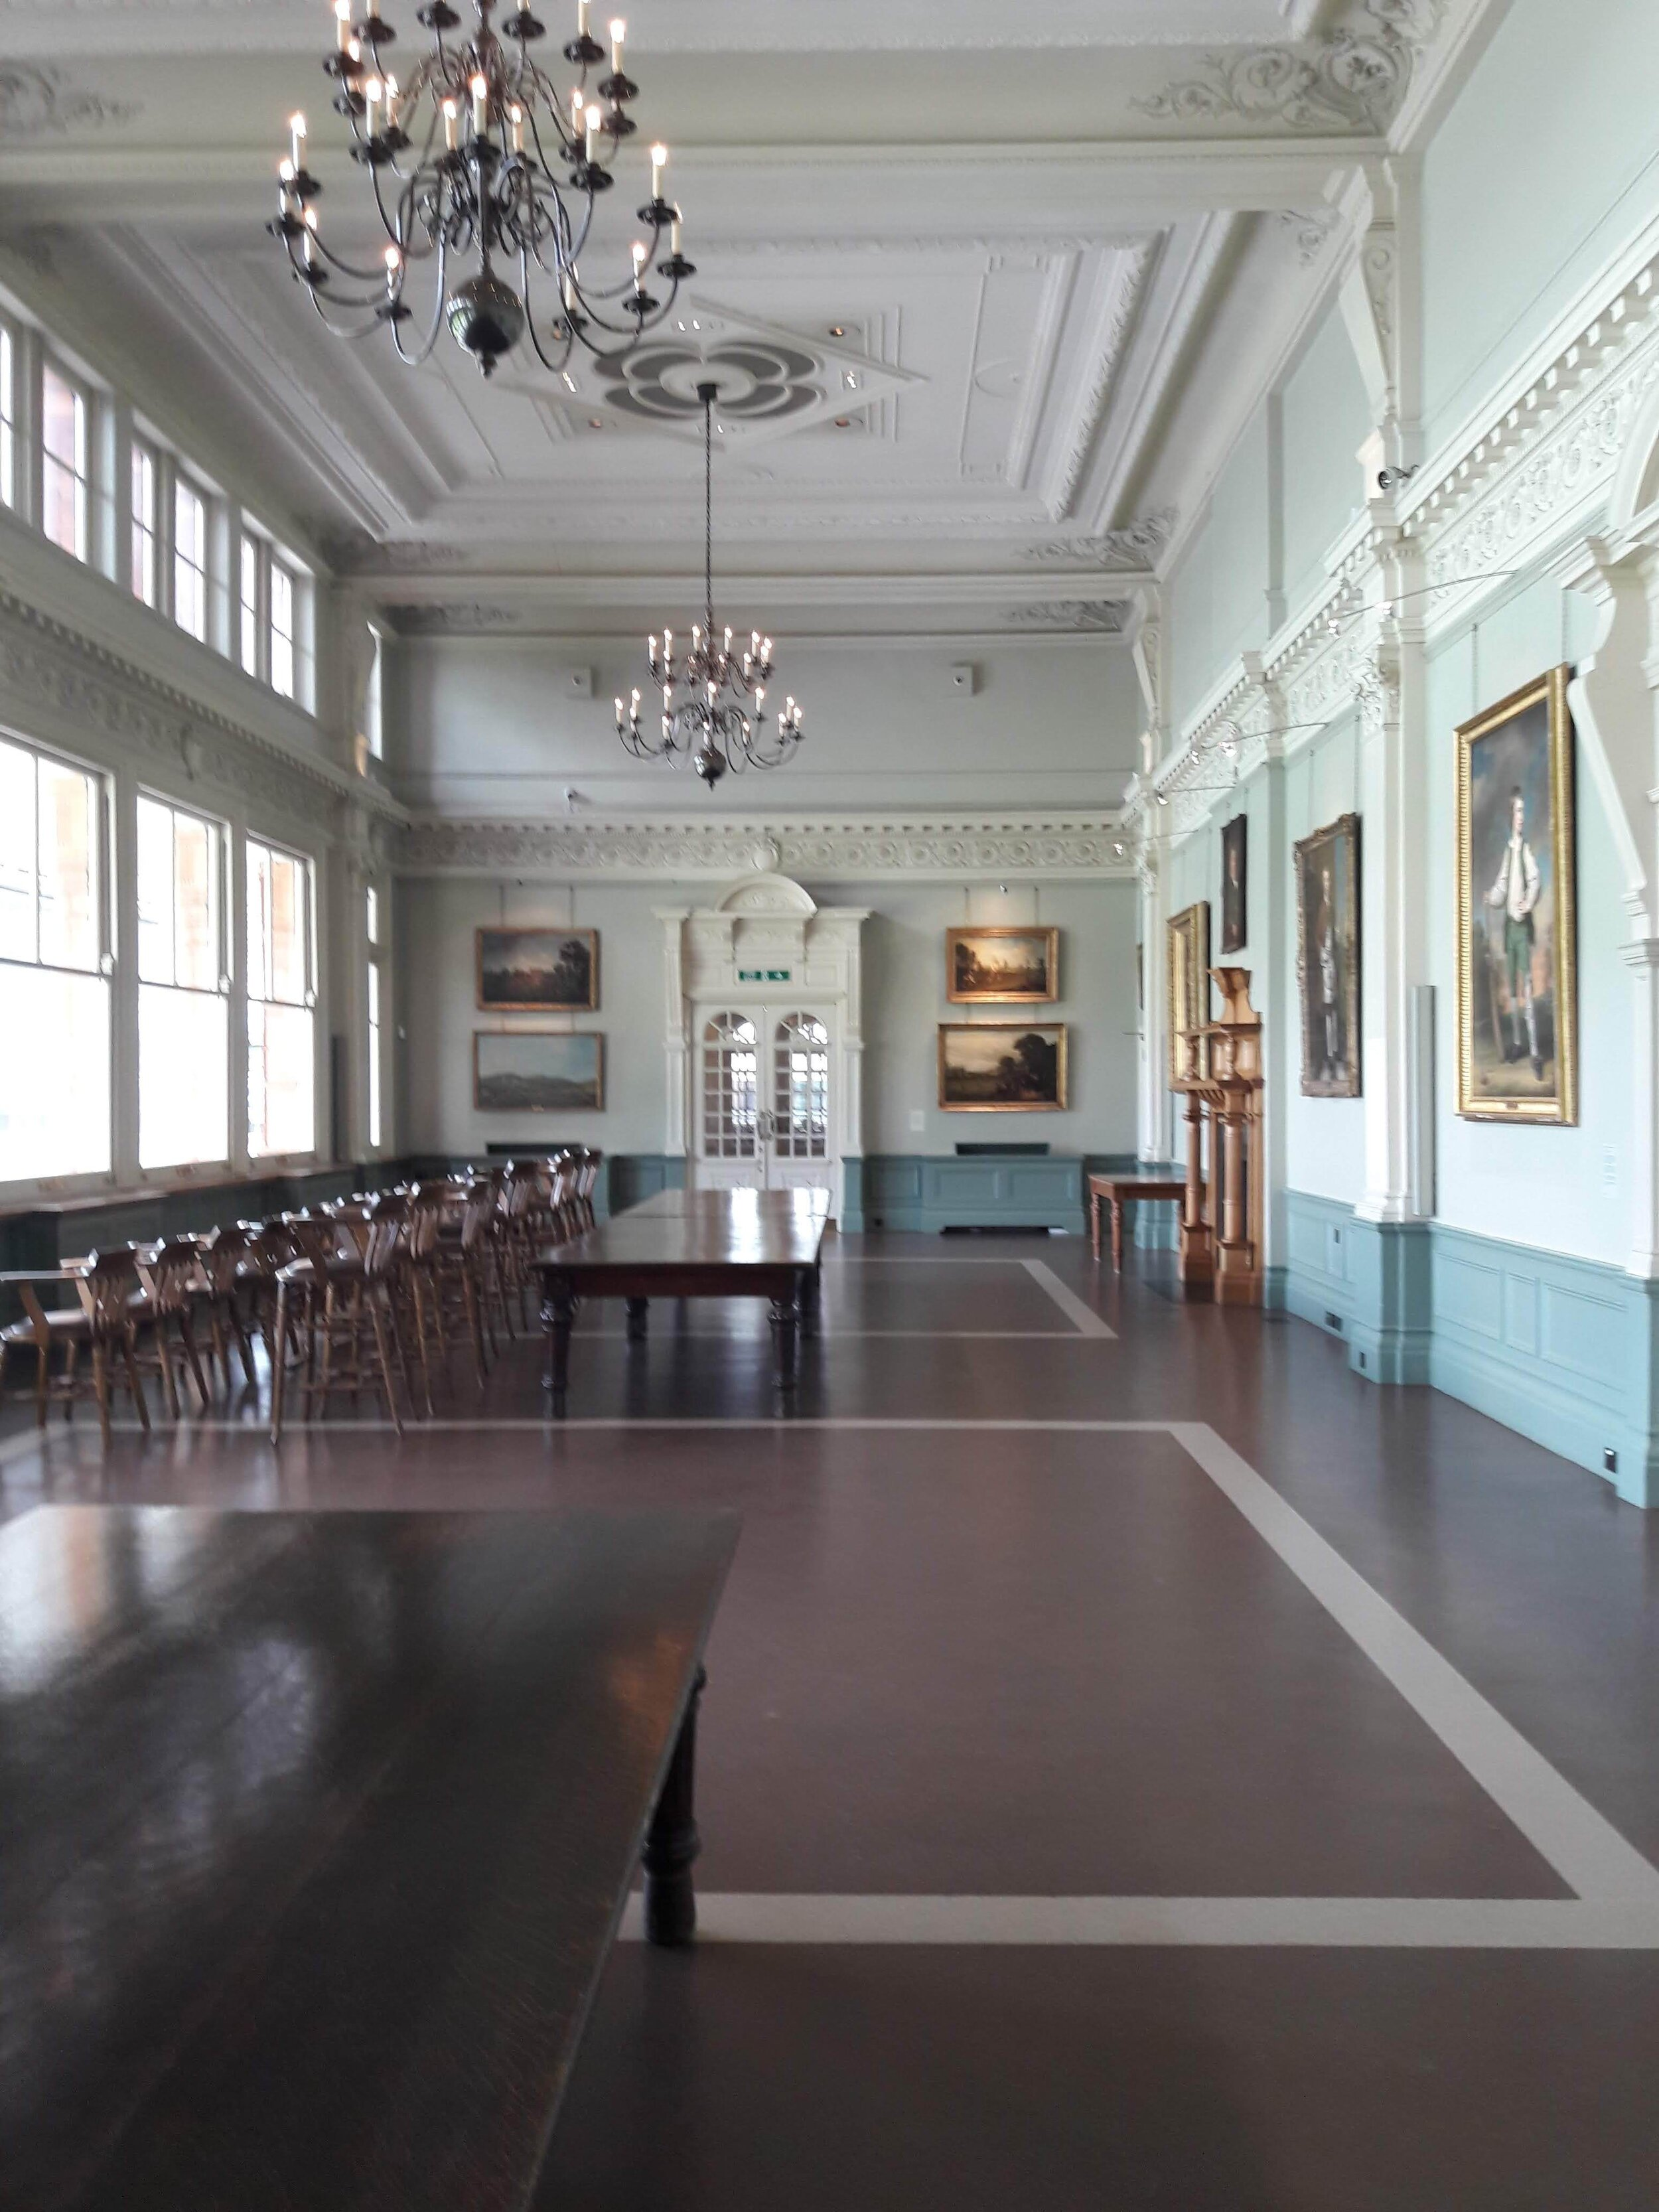 The Long Gallery, Lord's Cricket Ground